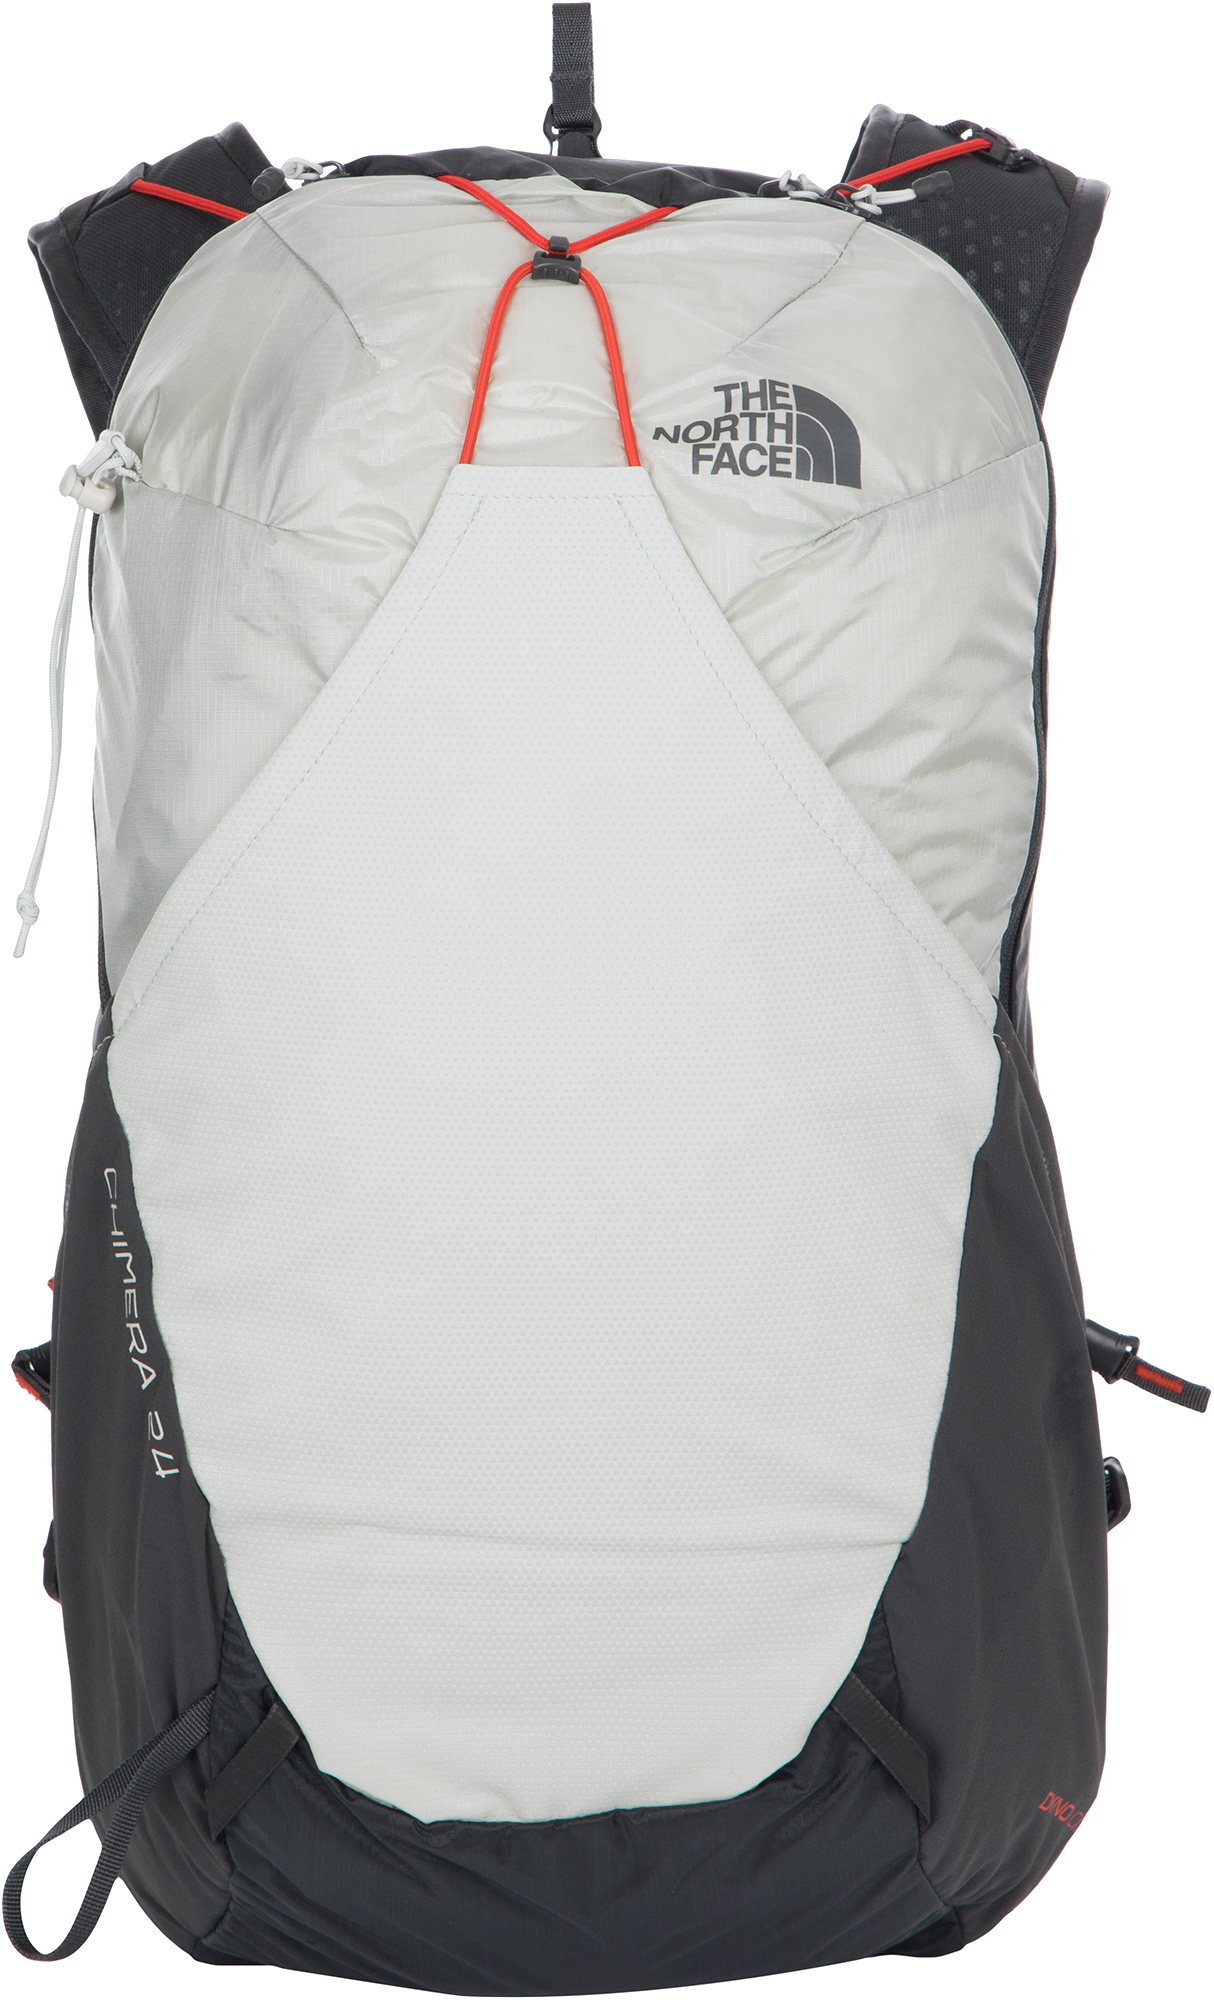 The North Face The North Face Chimera 24